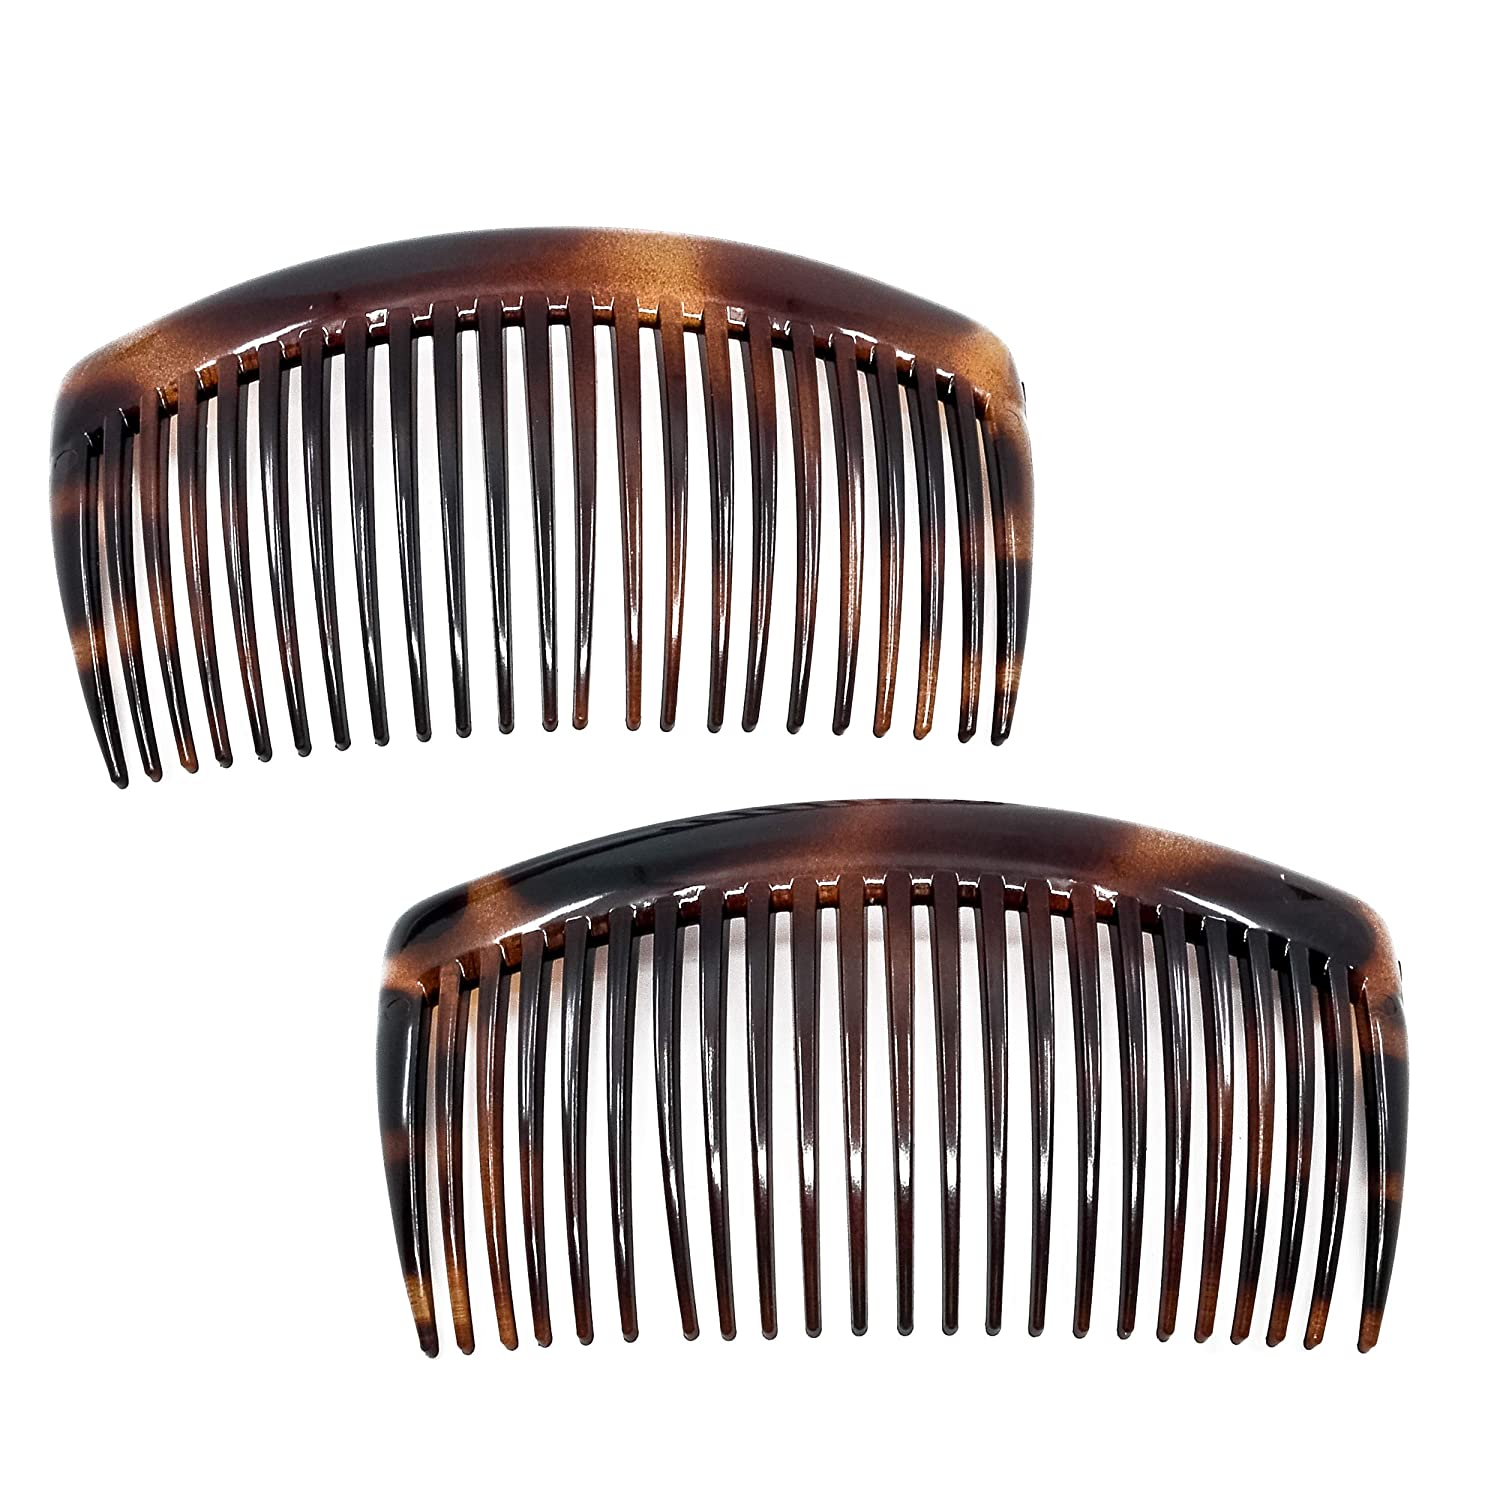 Camila Paris AD66/2 French Side Combs Large 2 Pack Curved Tortoise Shell Flexible Durable Cellulose Hair Combs, Strong Hold Hair Clips for Women, No Slip Styling Girls Hair Accessories, Made in France : Beauty